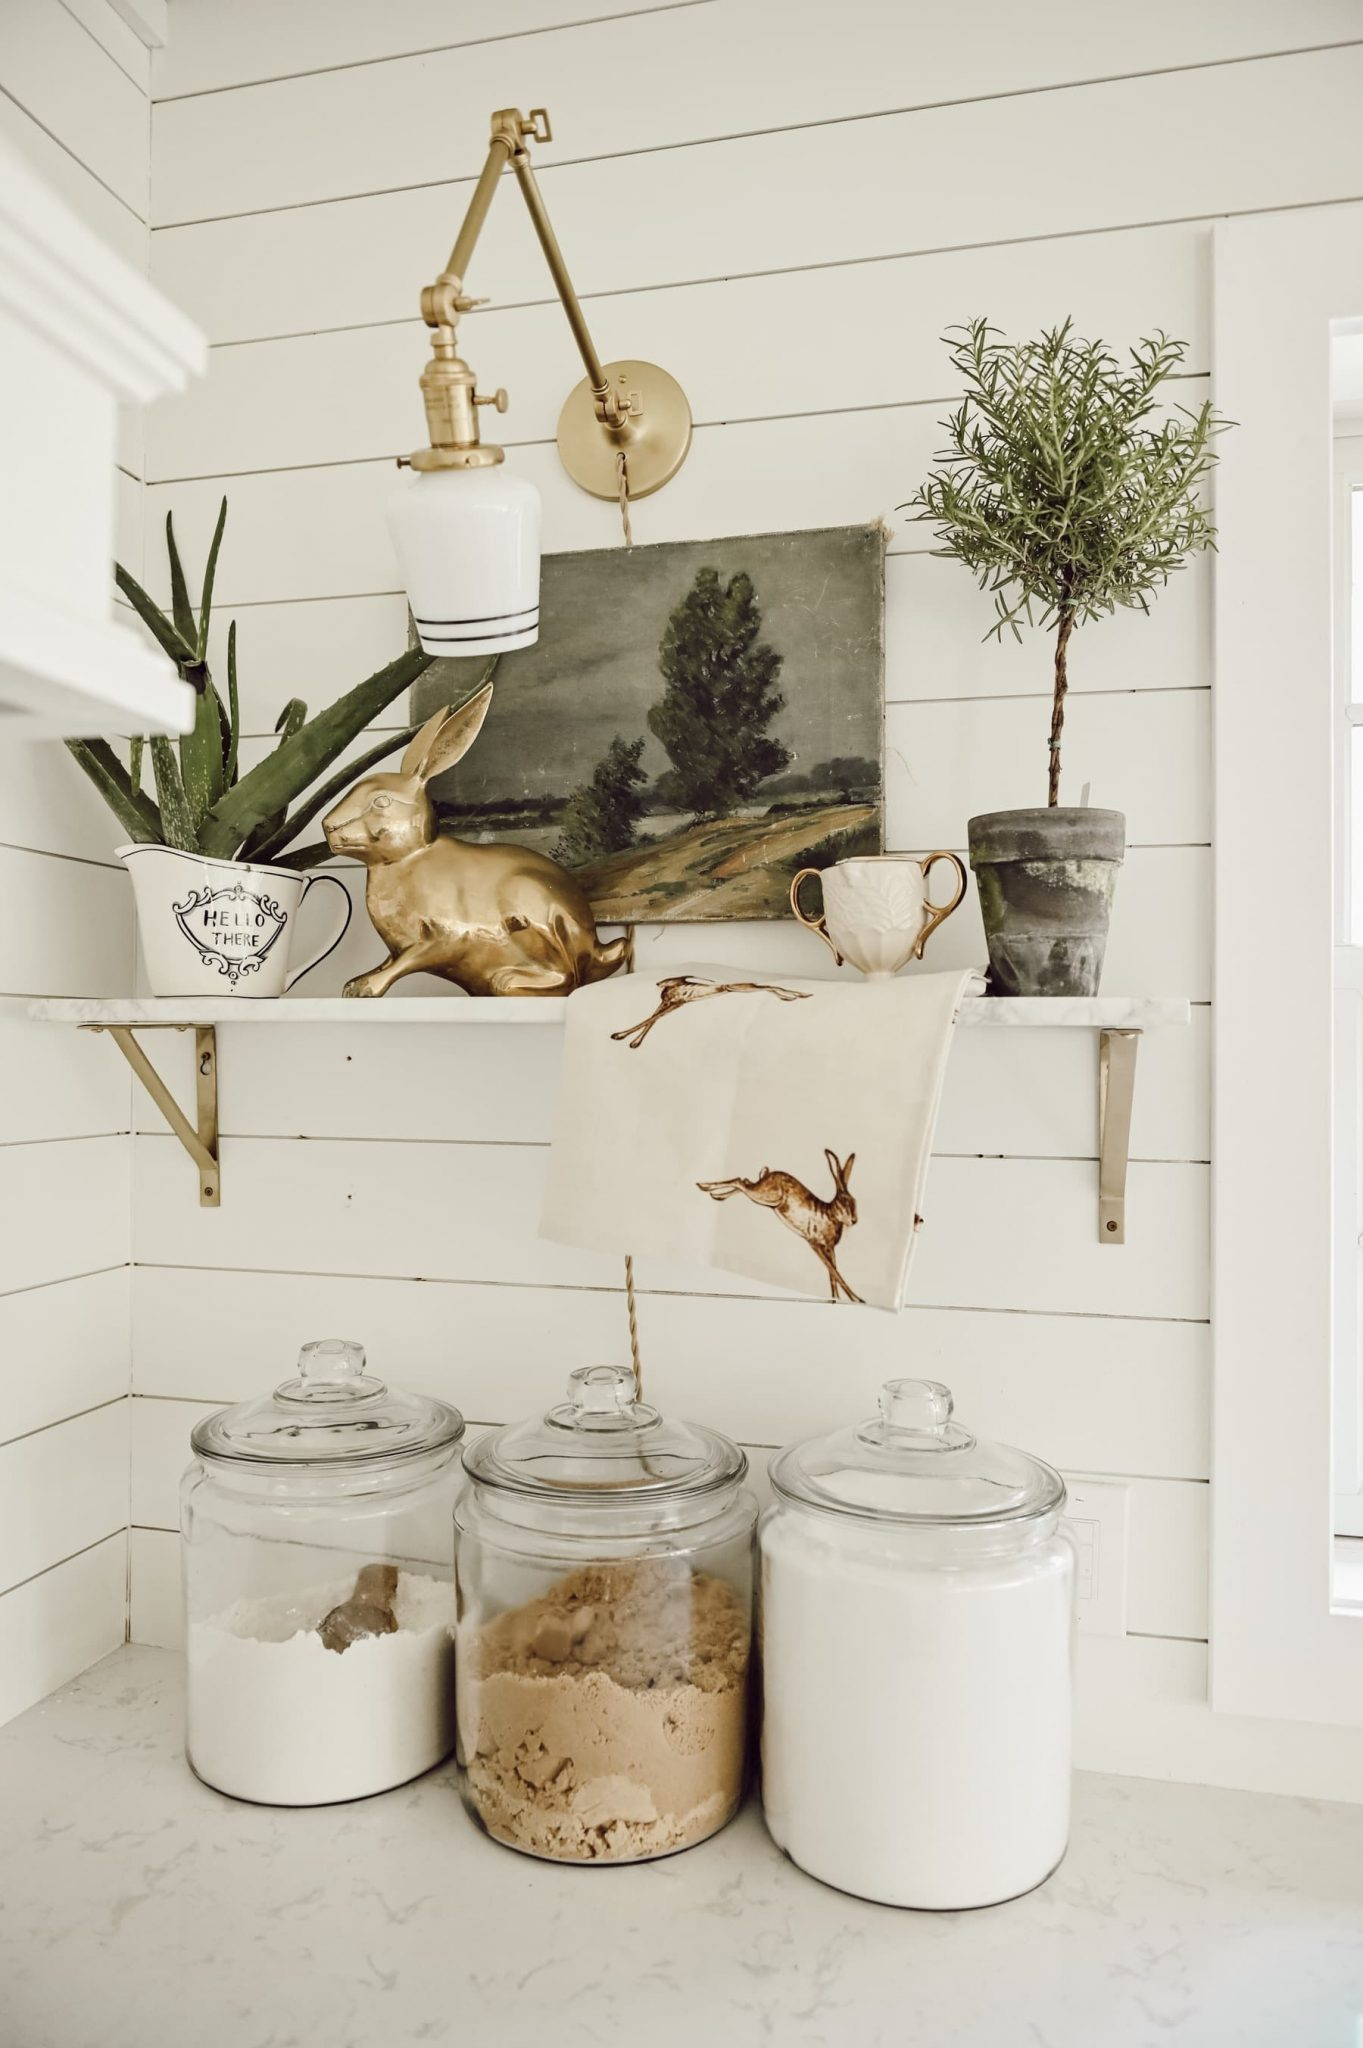 Shelf Styling Basics: Balance